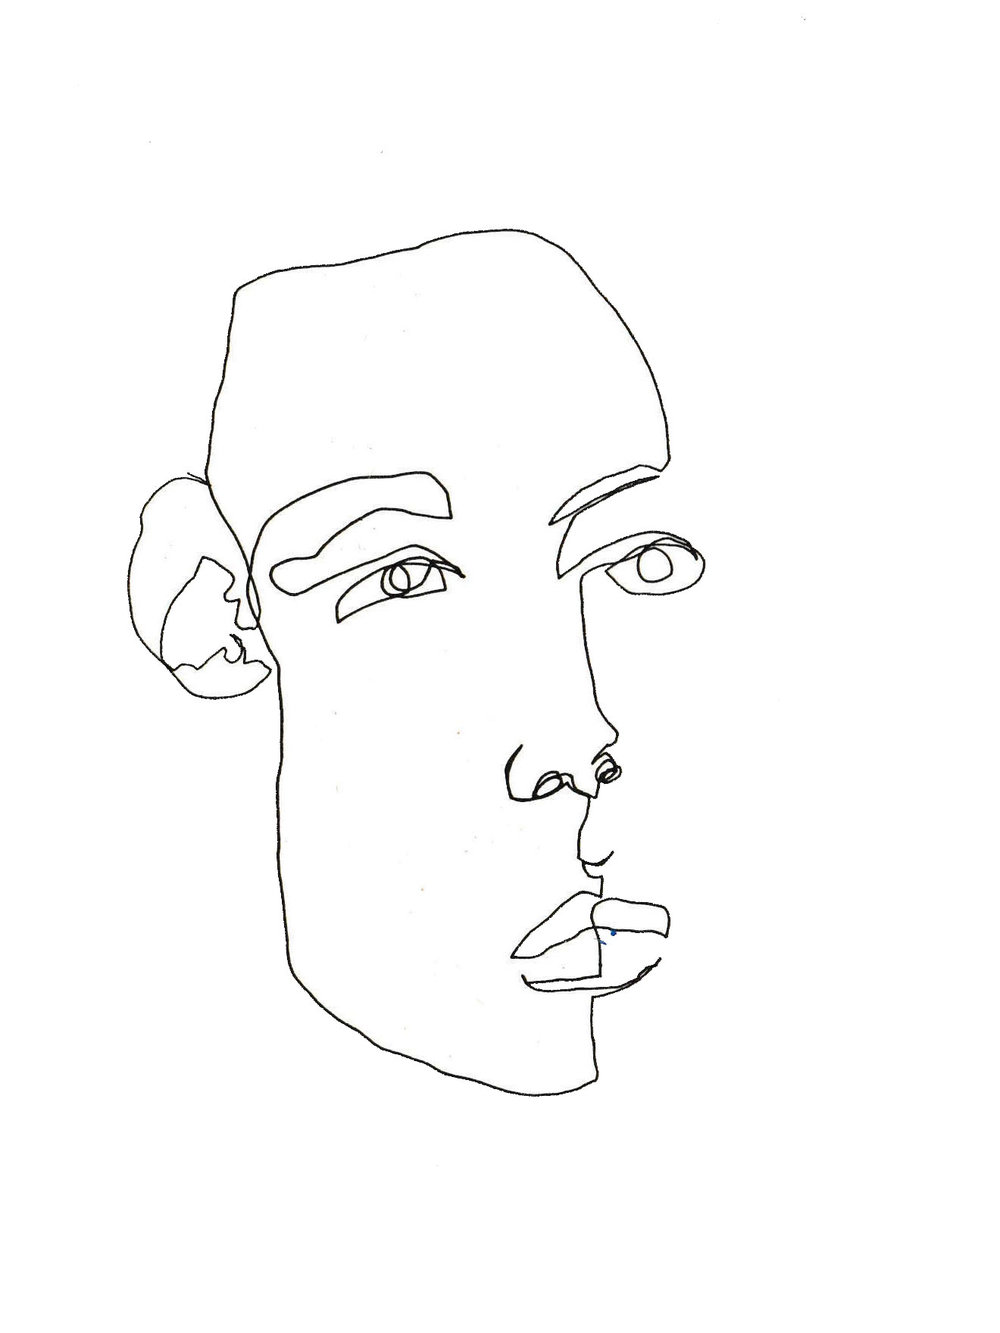 Blind Contour Line Drawing Face : Face line drawing at getdrawings free for personal